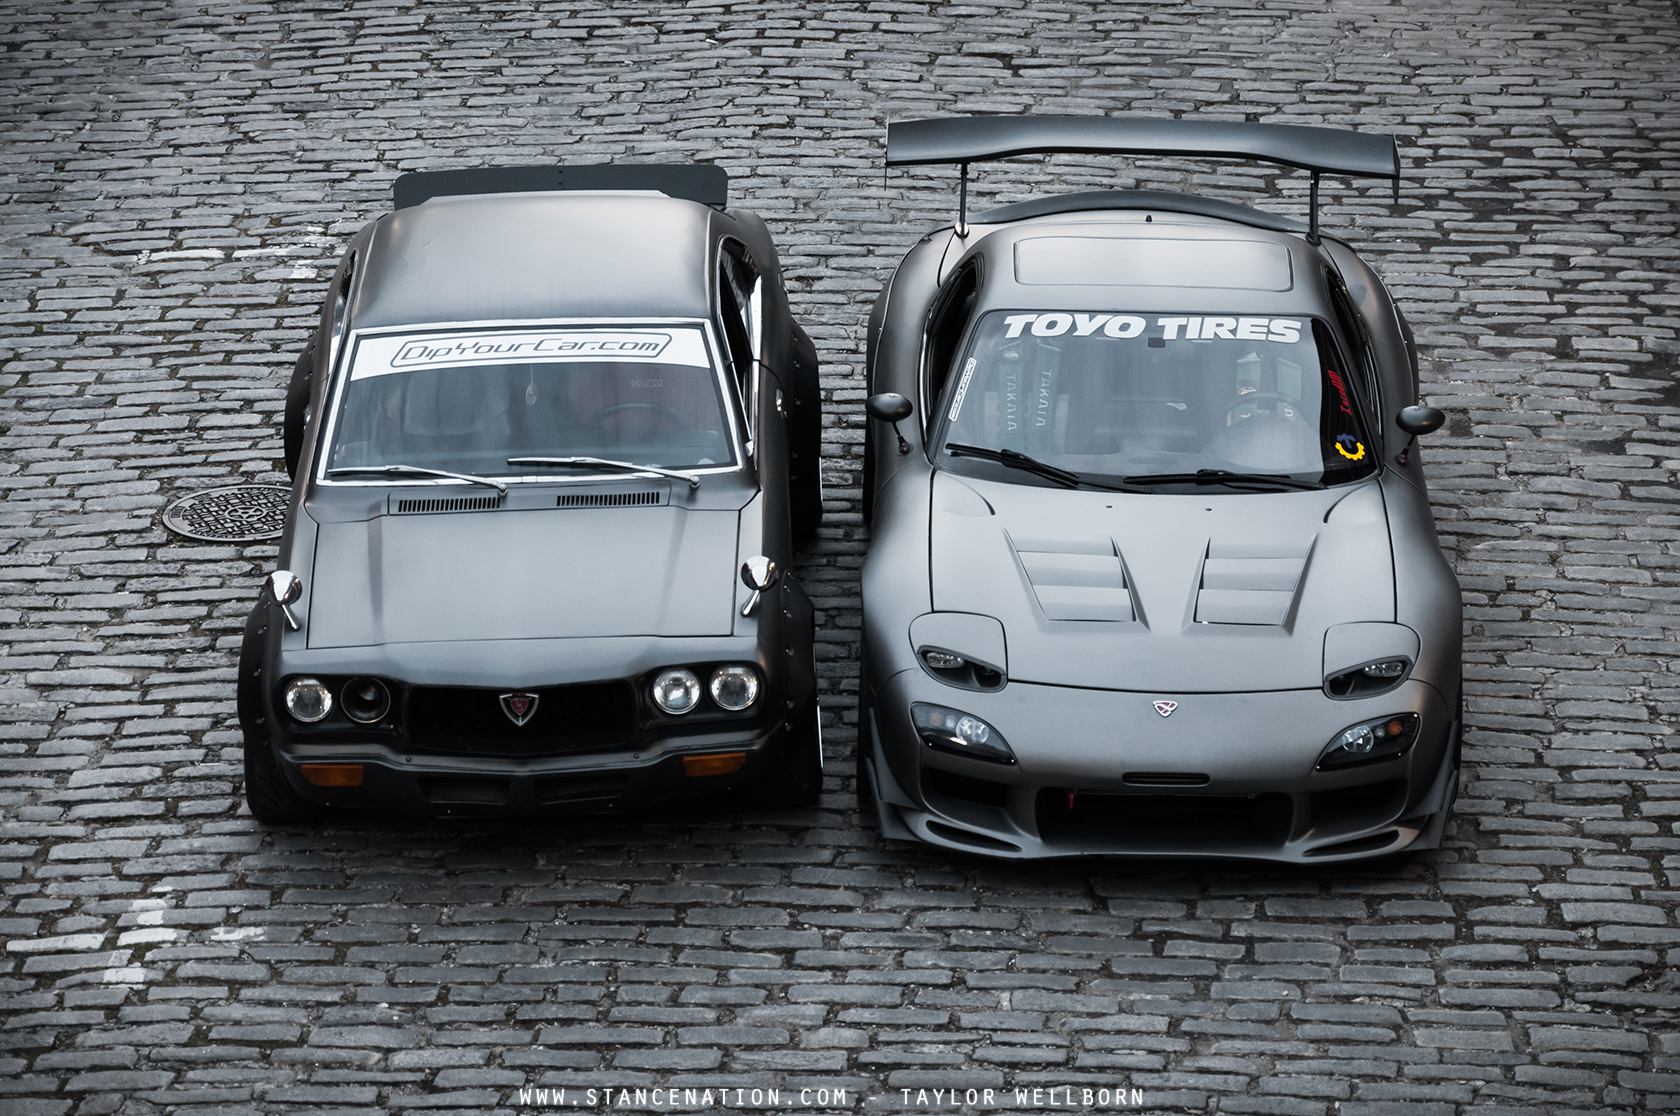 Old vs New? | StanceNation™ // Form > Function